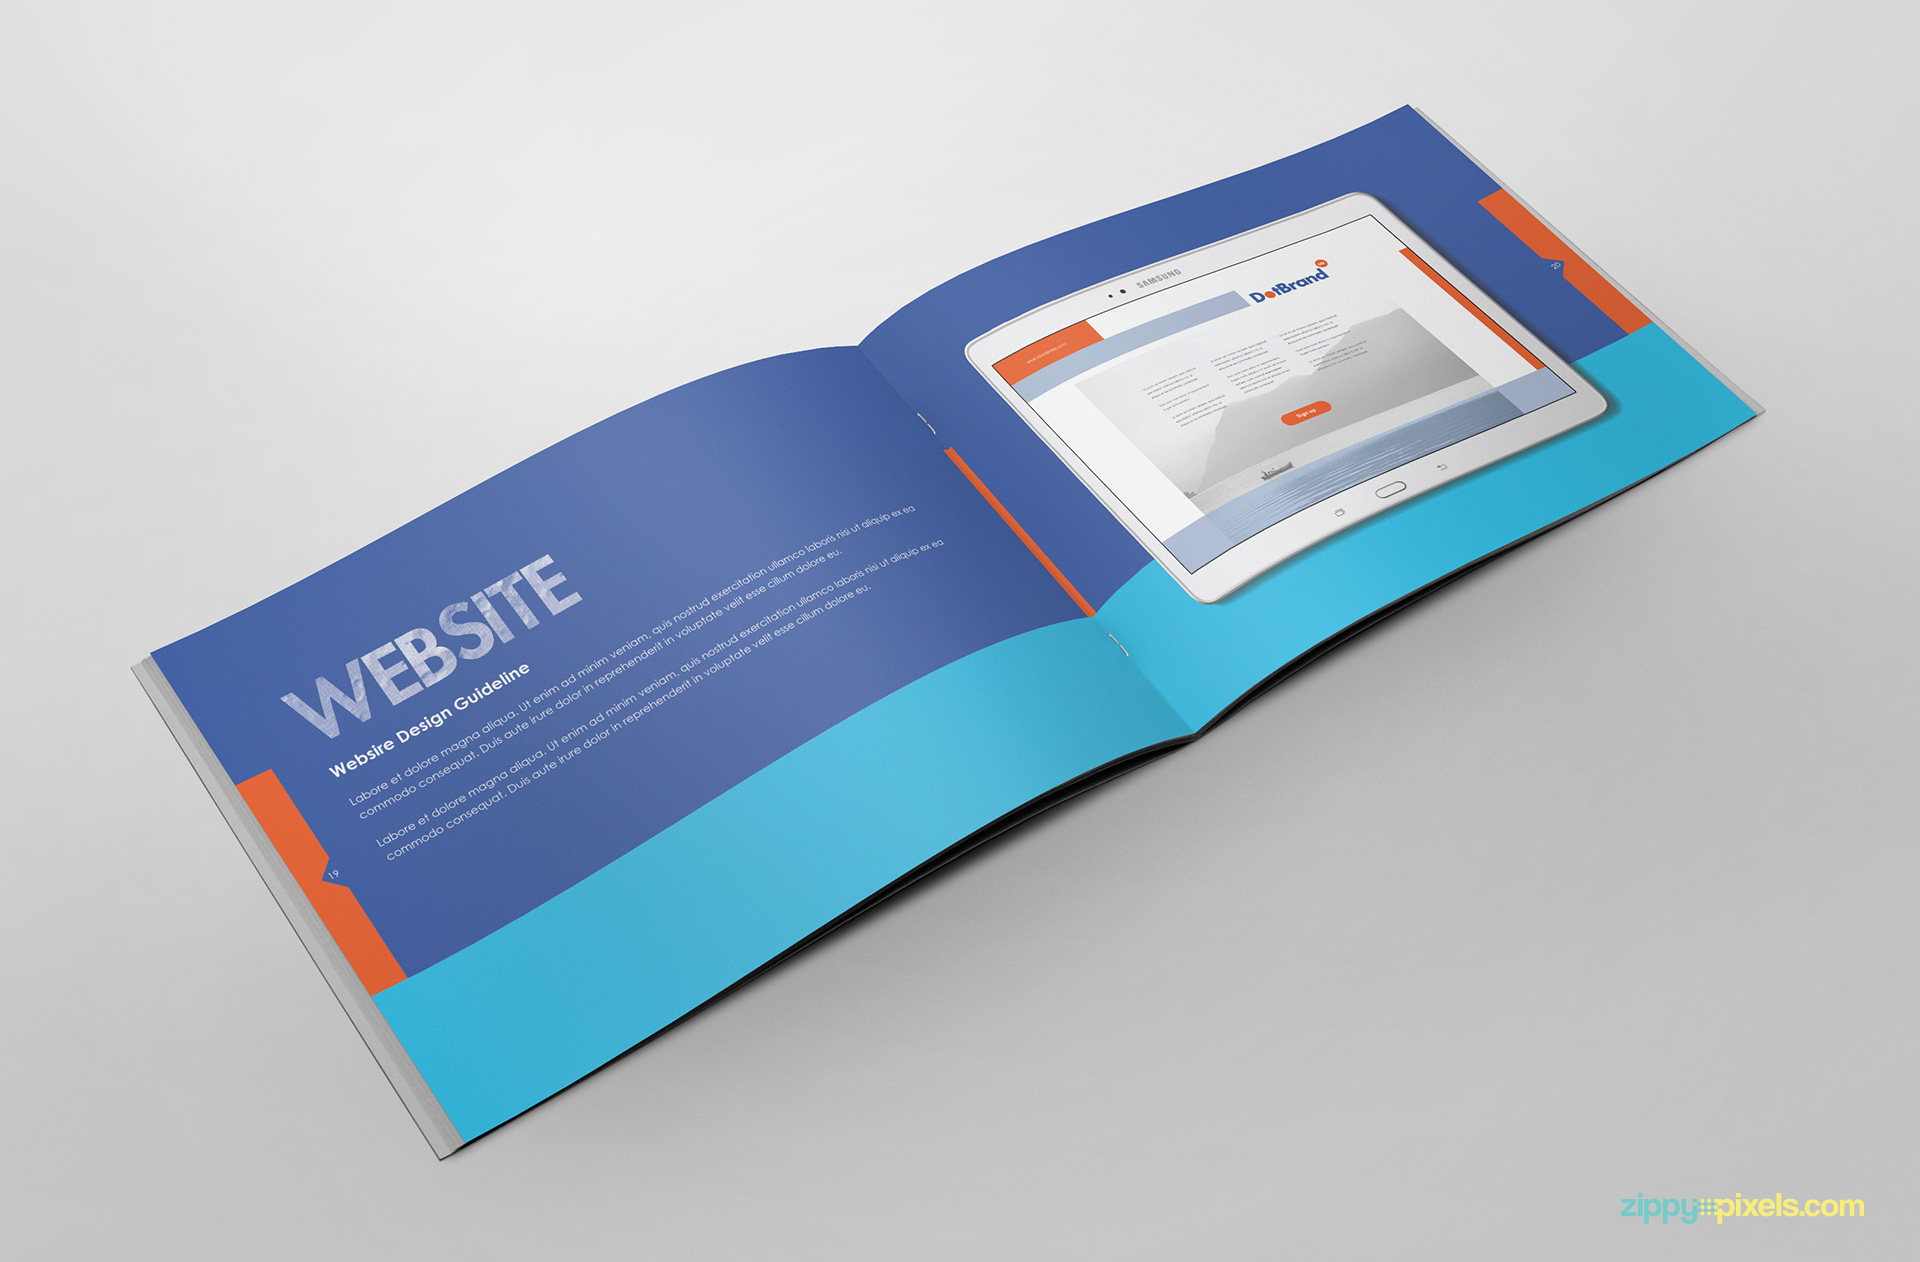 18 additional templates included in professional version